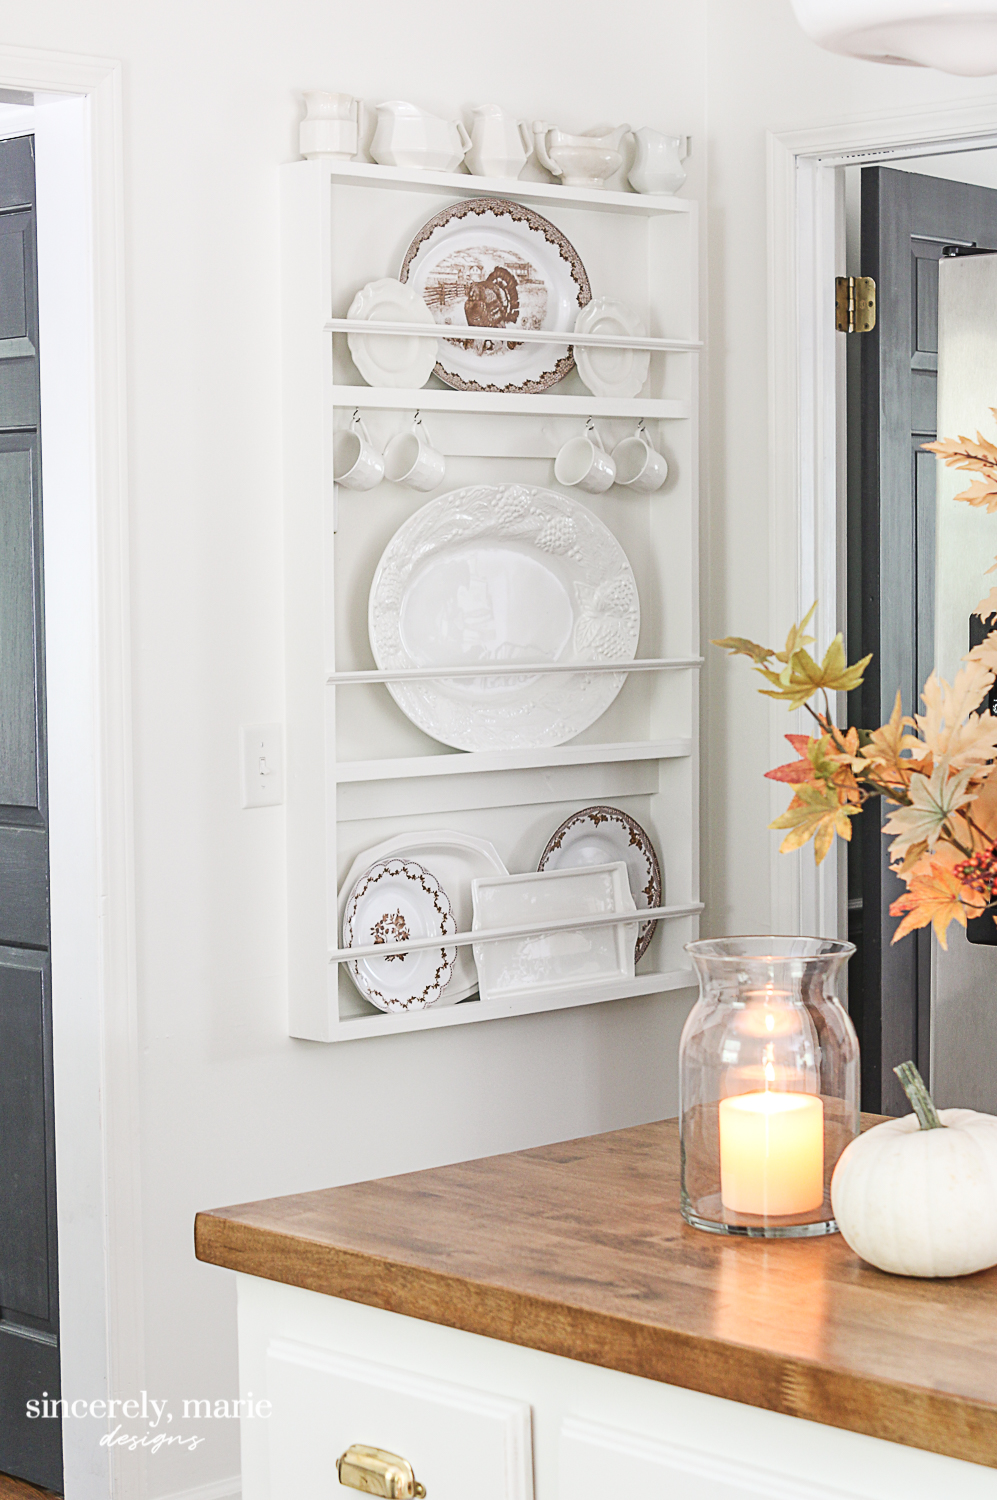 A New Plate Rack In The Kitchen Sincerely Marie Designs